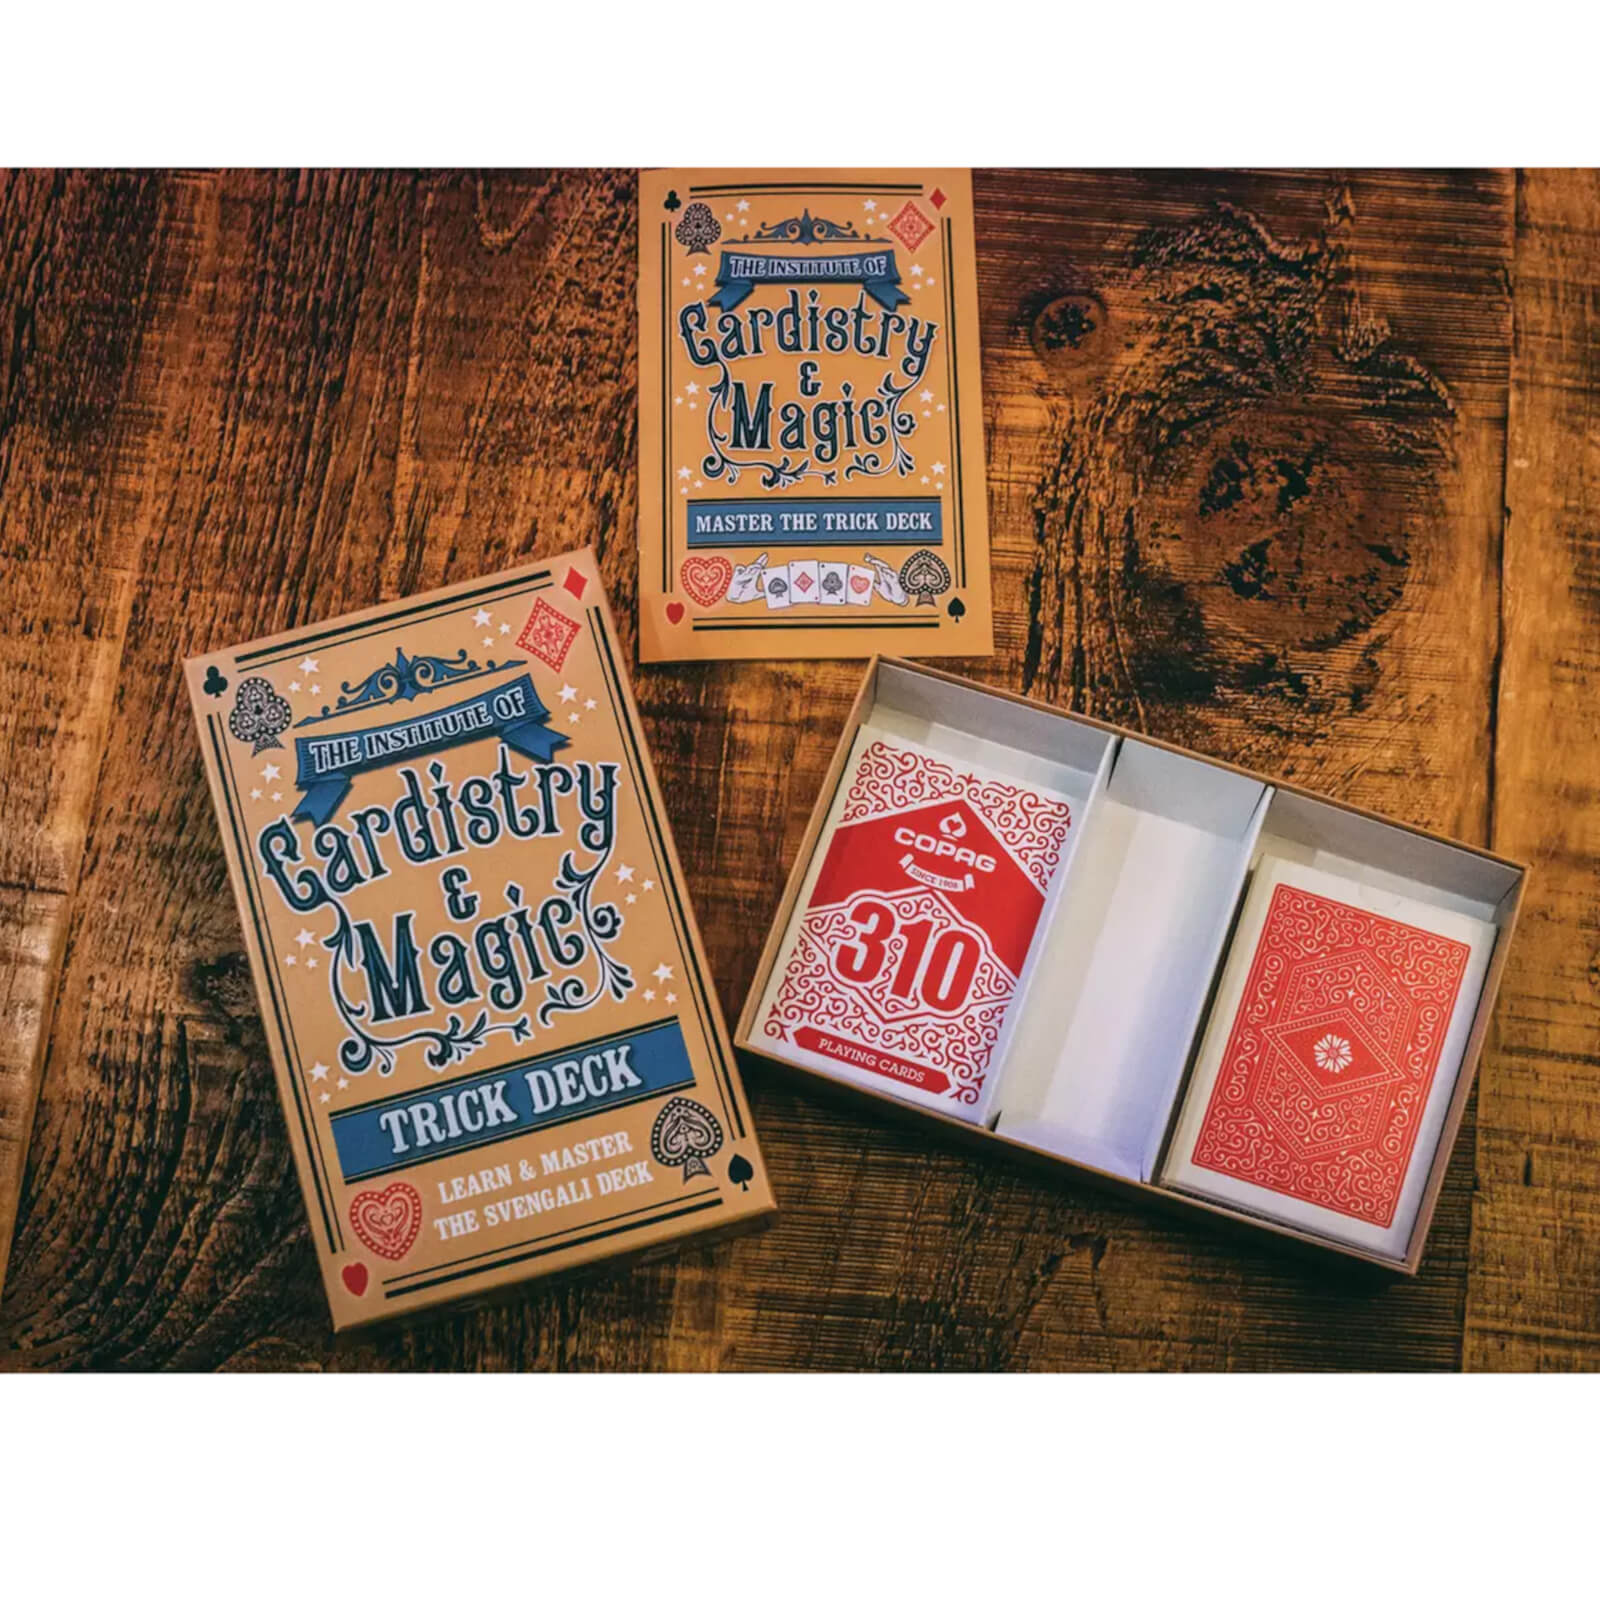 Image of The Institute of Cardistry & Magic - Trick Deck